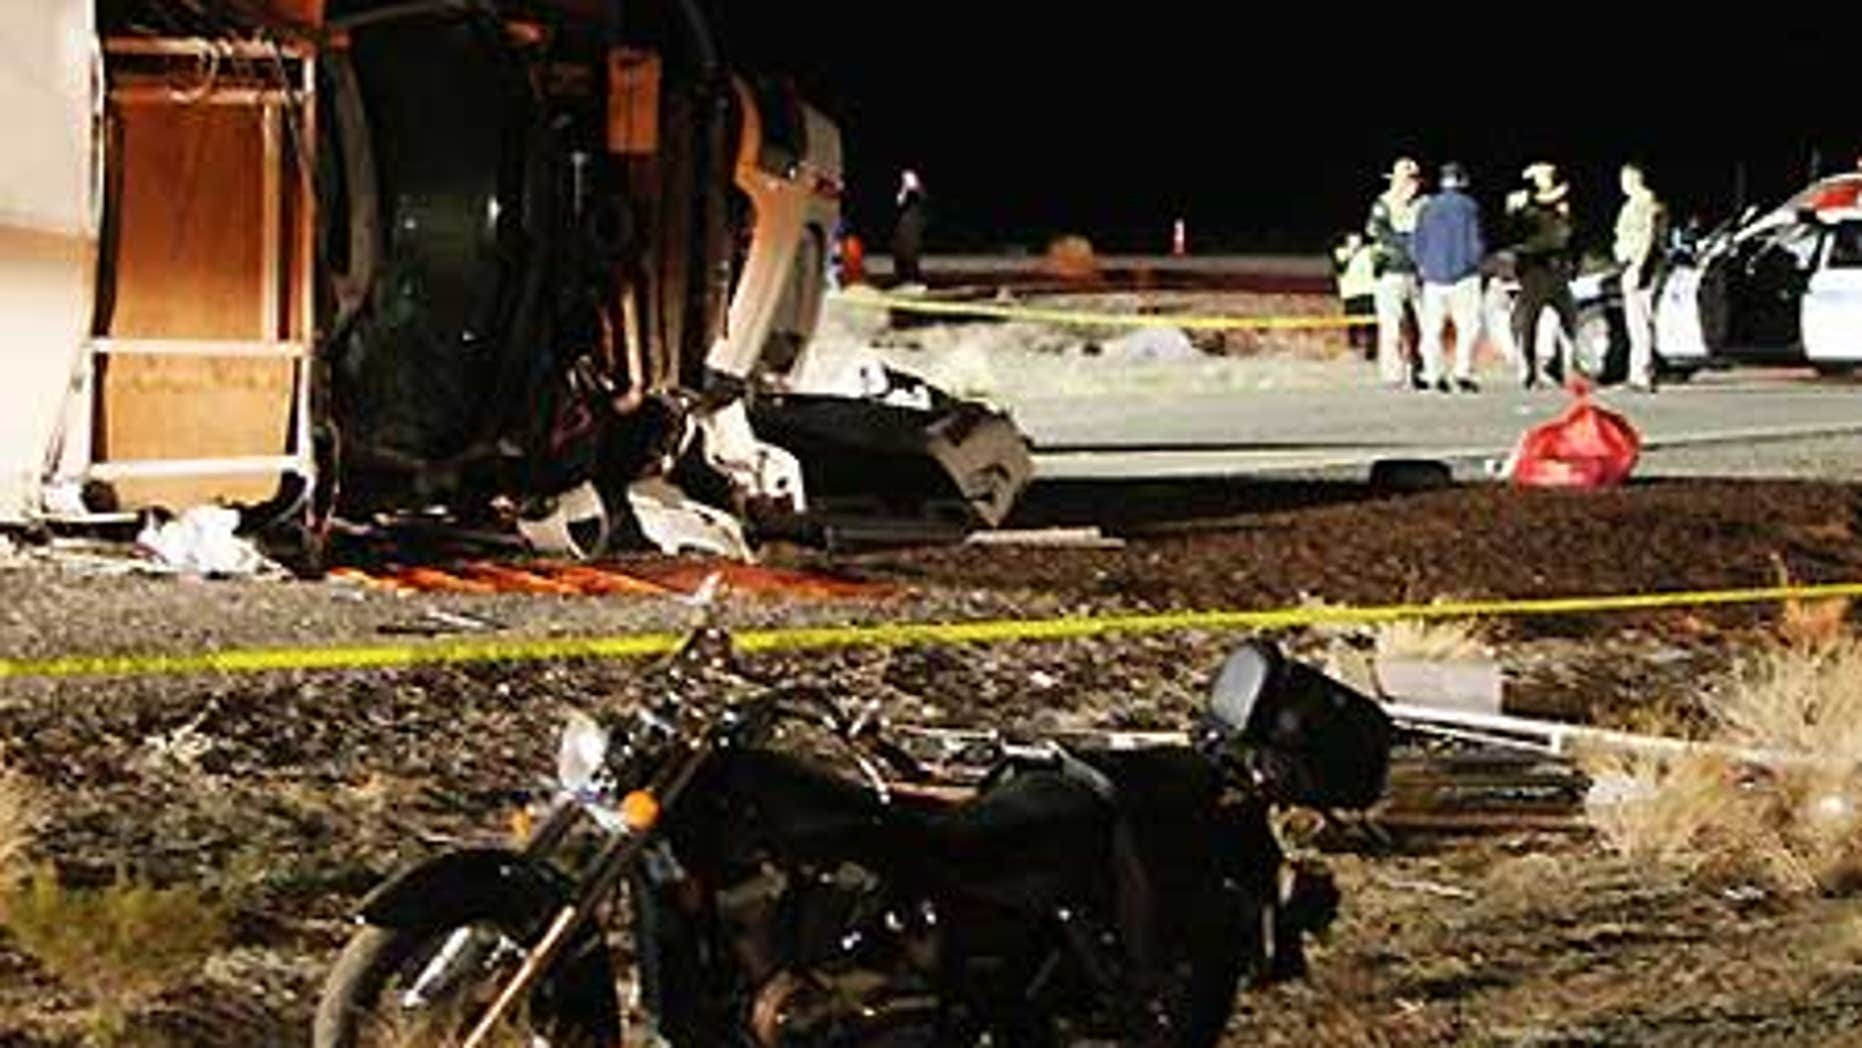 Jan. 30: The wreckage of a tour bus crash in Arizona, which killed at least 7 Chinese tourists.